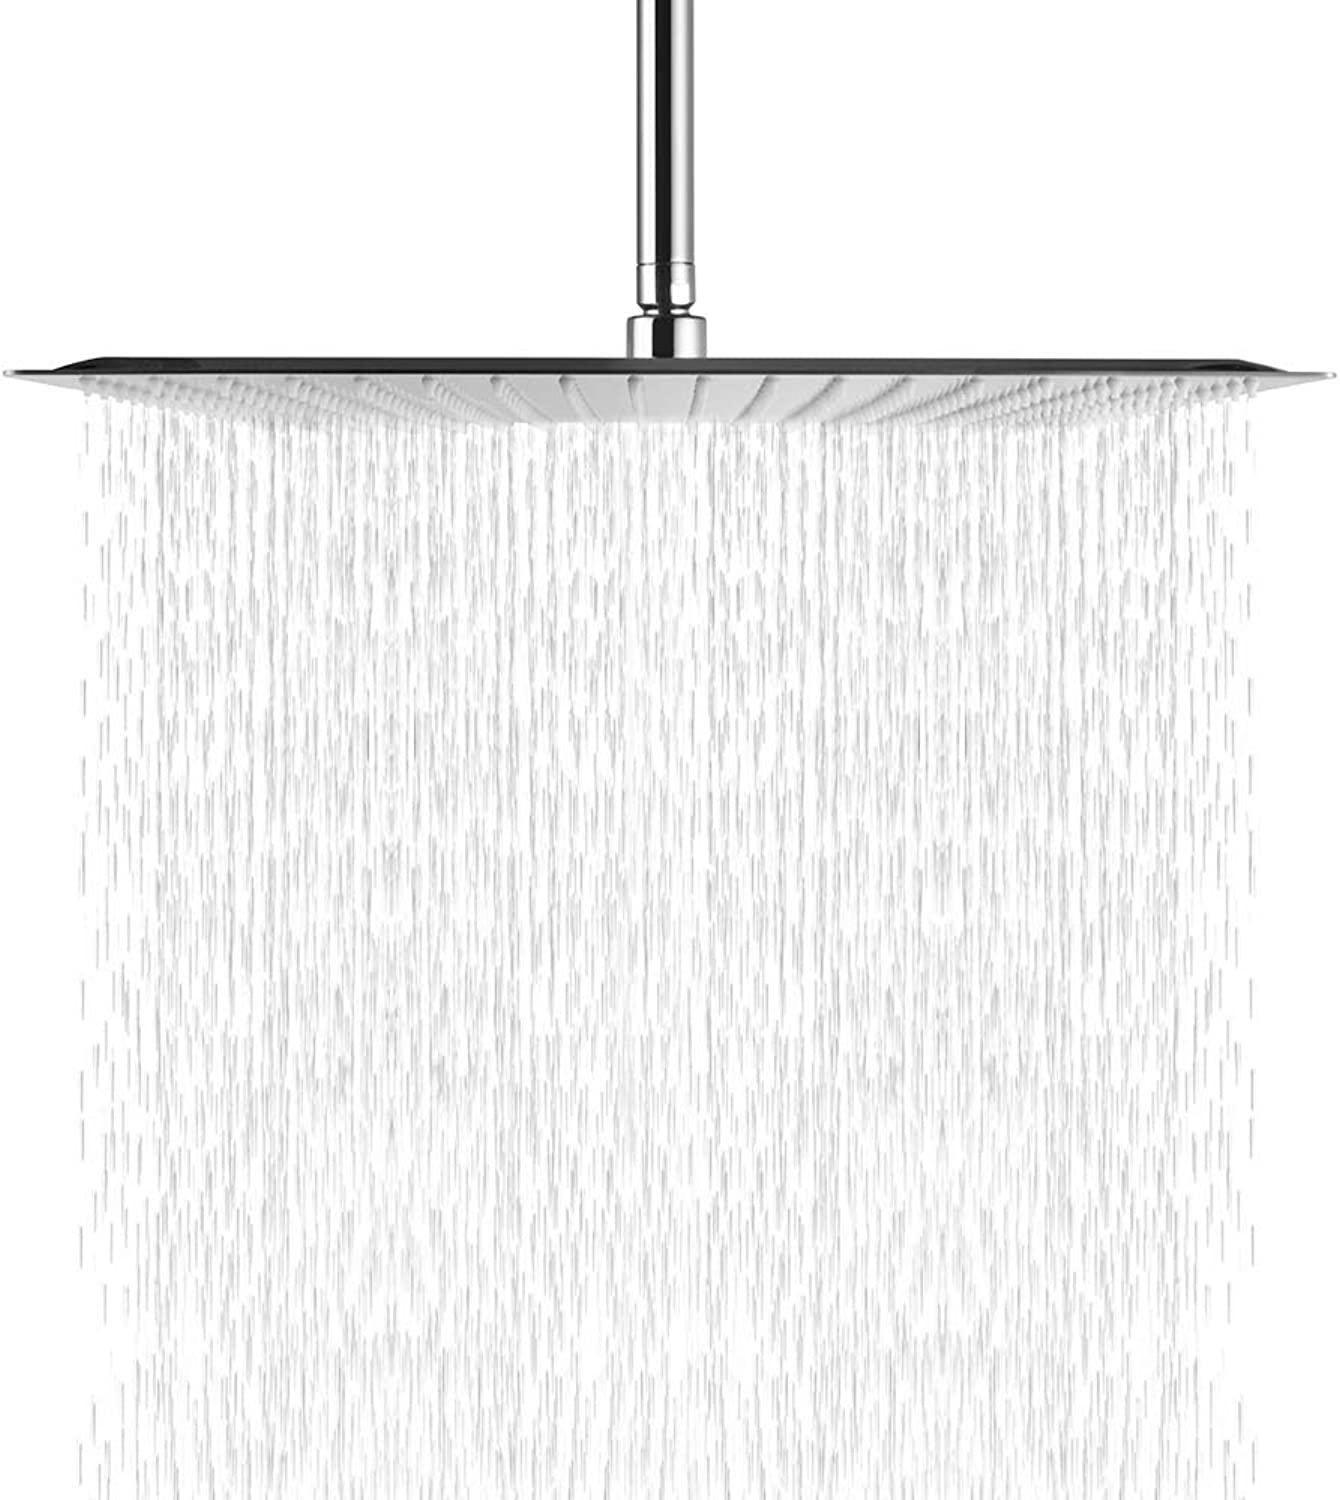 Logmey LM0016S Solid Square Ultra Thin 304 Stainless Steel 16 Inch Adjustable Rain Shower Head, Chrome Finish (Chrome 16 inch)